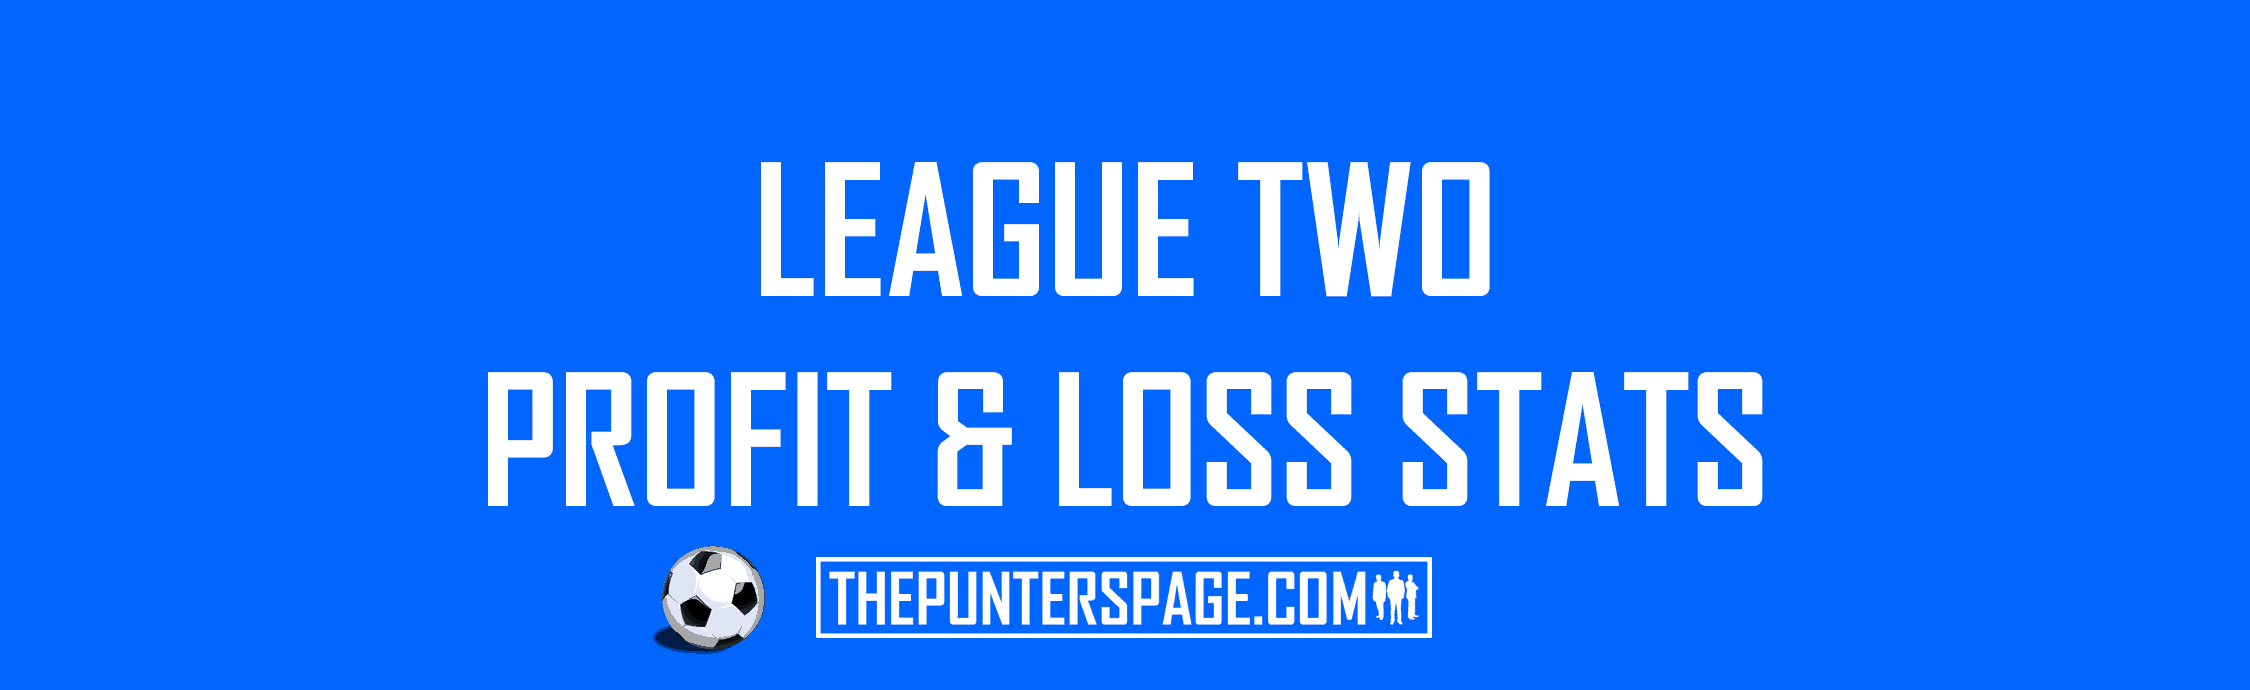 English League Two Profit & Loss Statistics